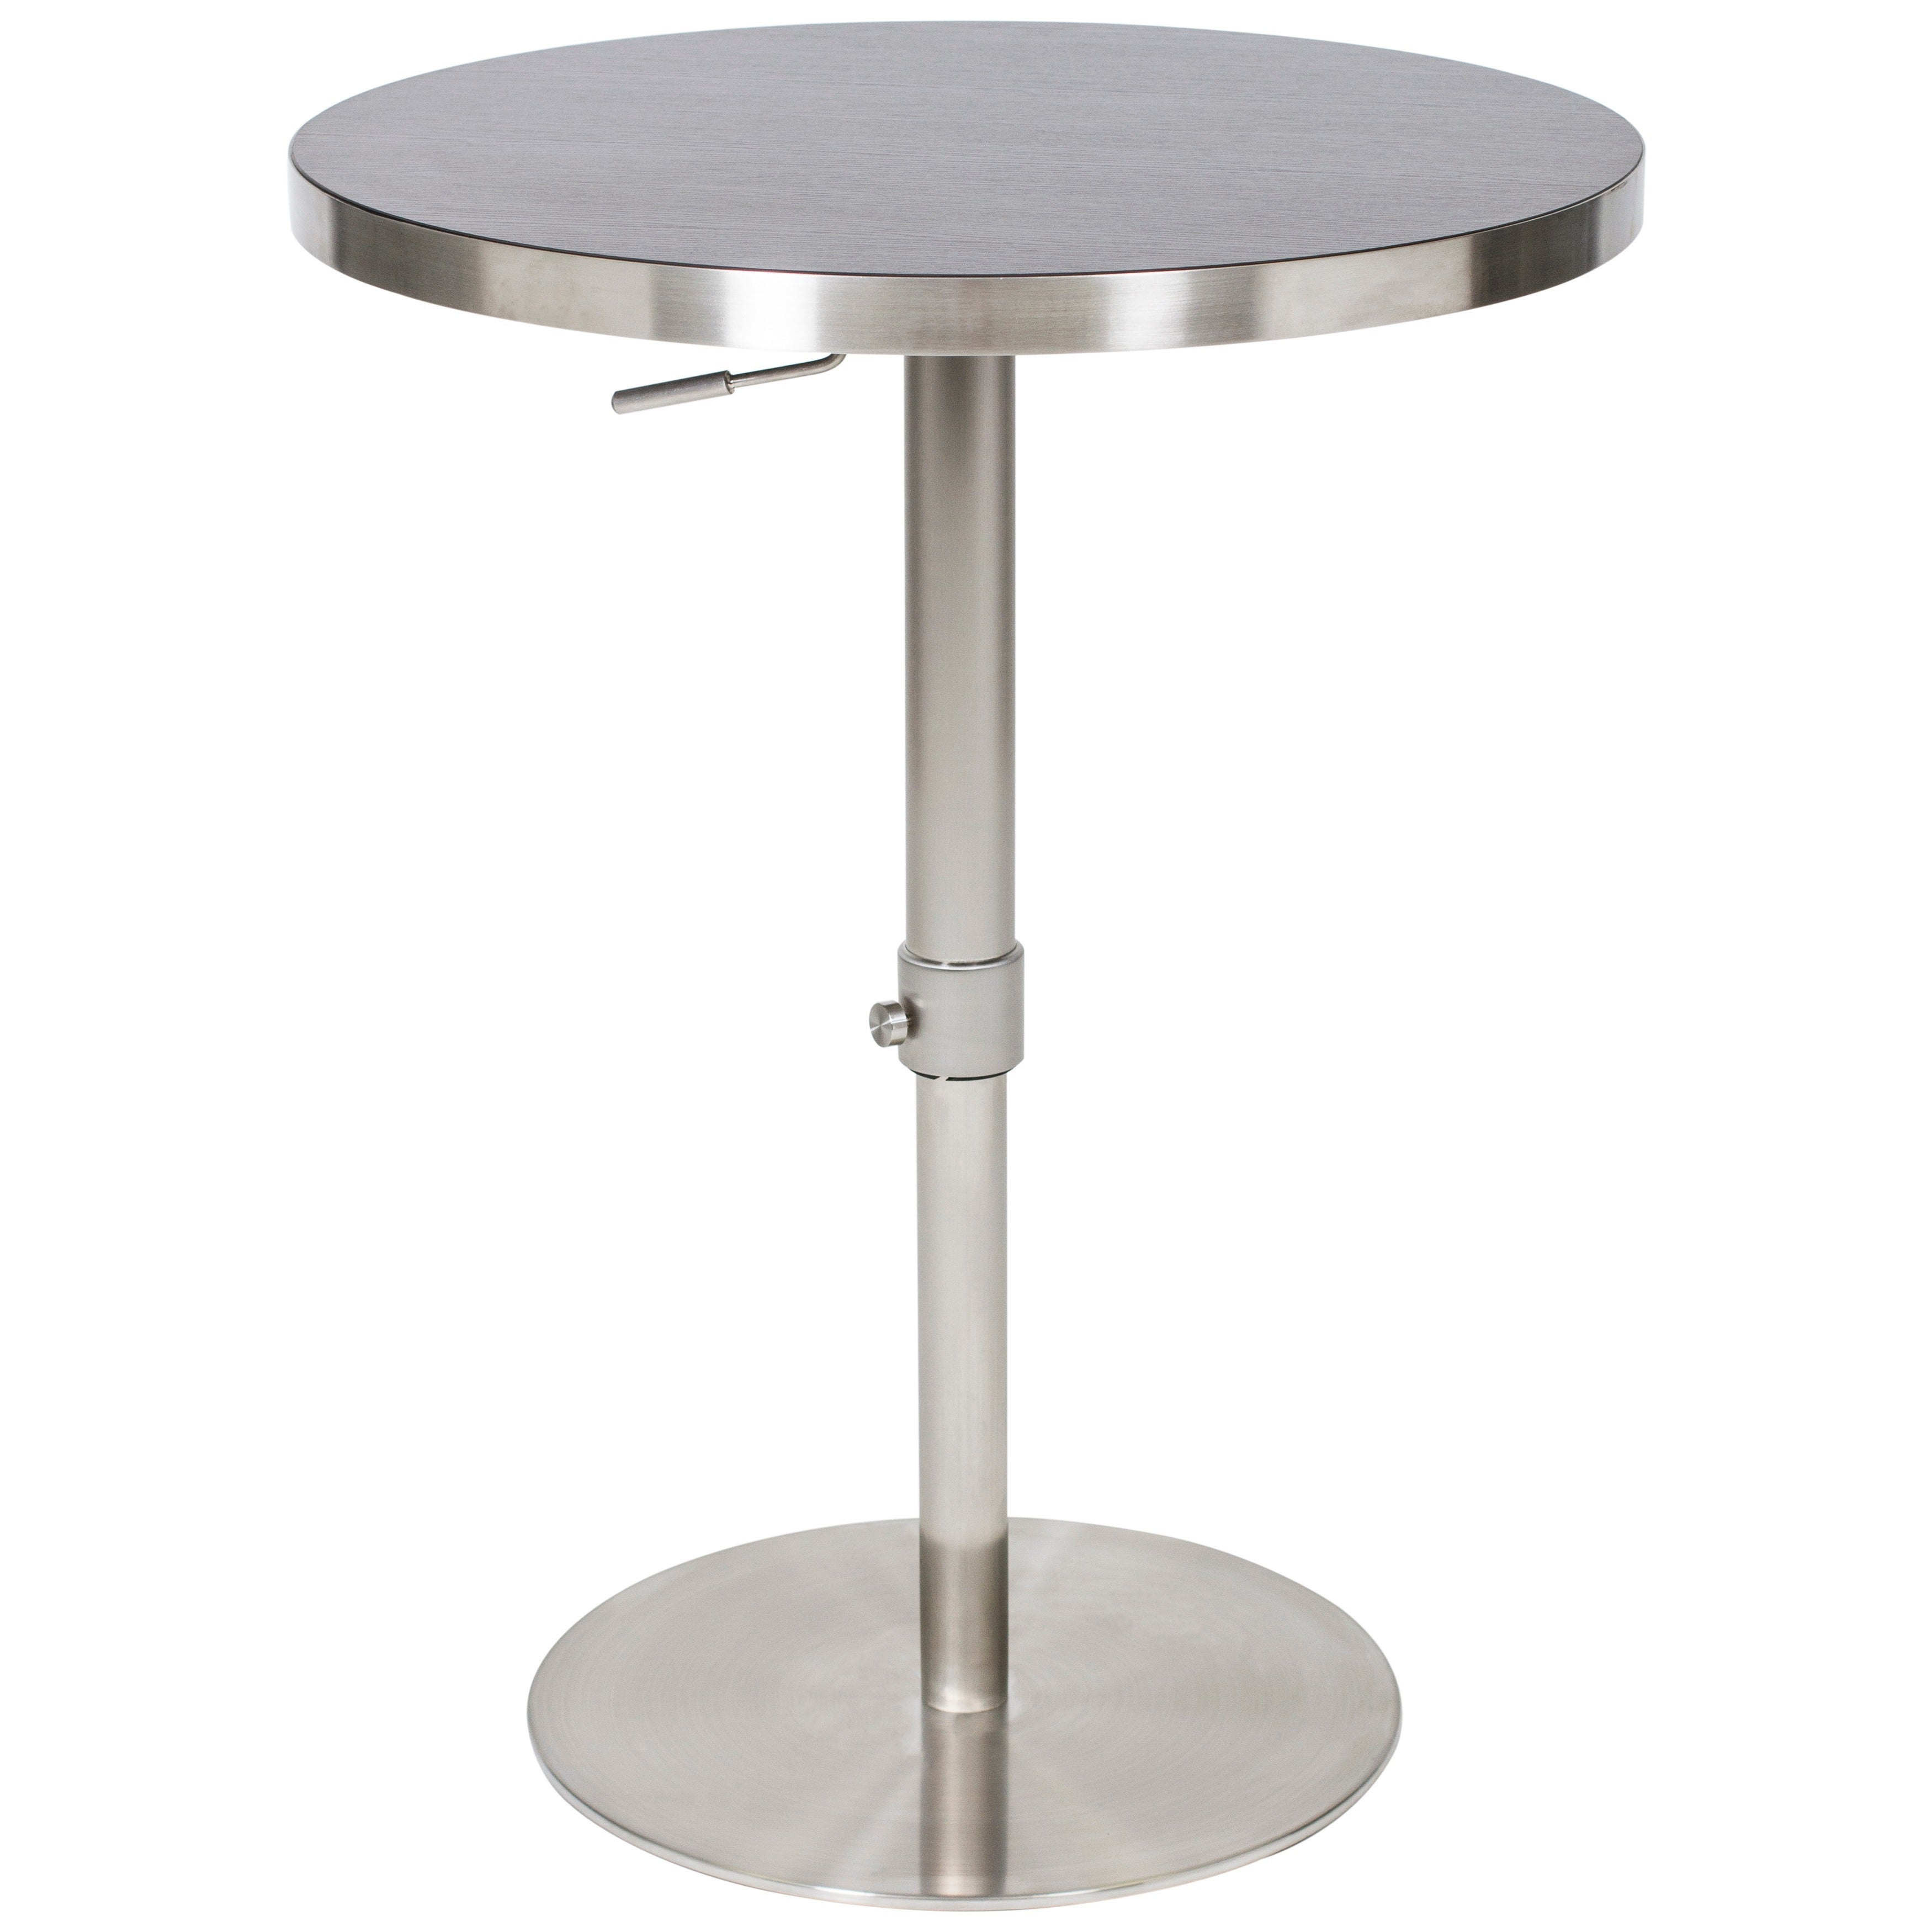 Shop MIX 26   36 Inch Adjustable Height Round Espresso Wood Melamine Veneer  Brushed Stainless Steel Pub Table With Round Slab Base   On Sale   Free  Shipping ...